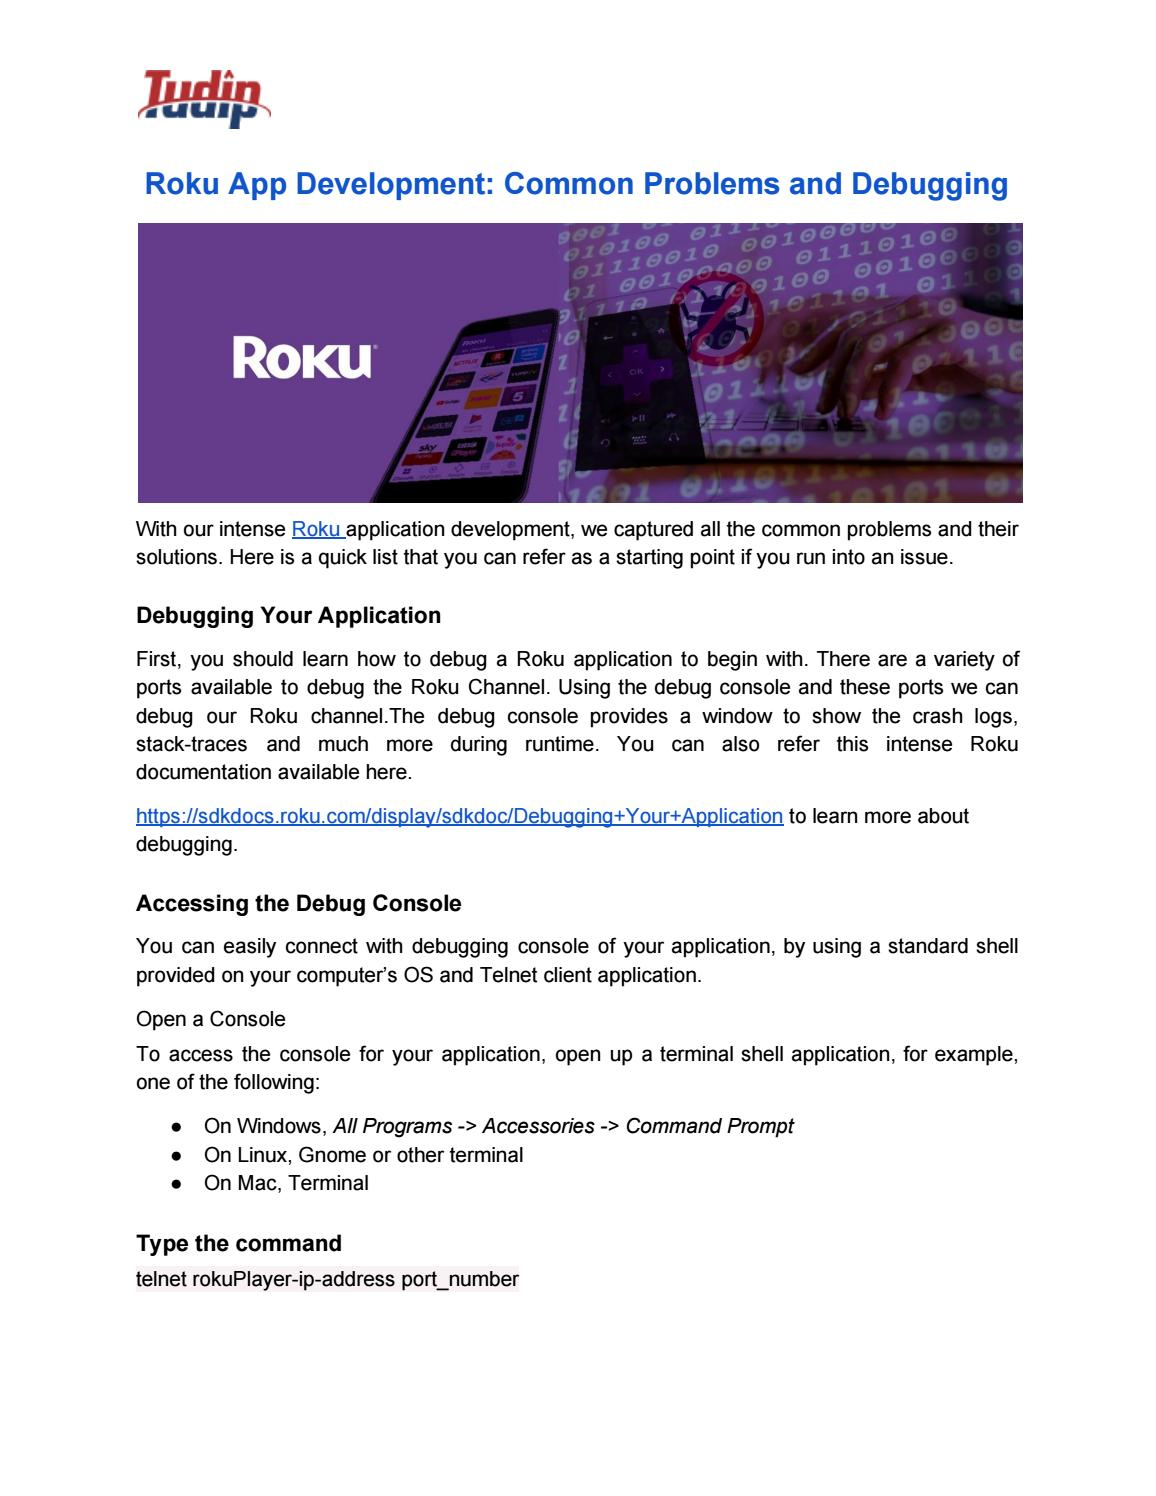 Roku App Development: Common Problems and Debugging by Tudip - issuu